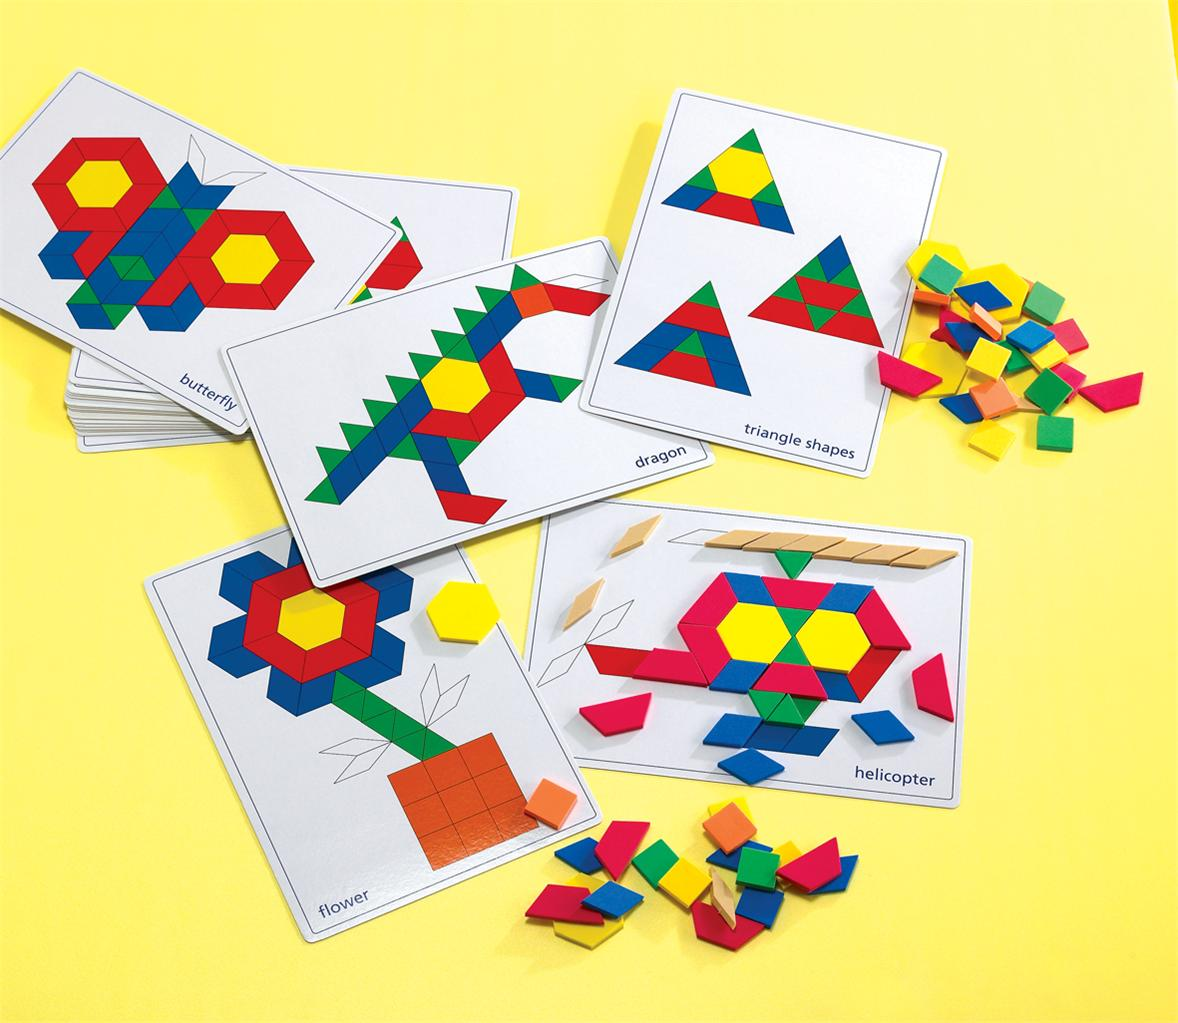 Pattern-Blocks-Picture-Cards-Make-Geometric-Shapes-Pictures-Set-of-20-Cards